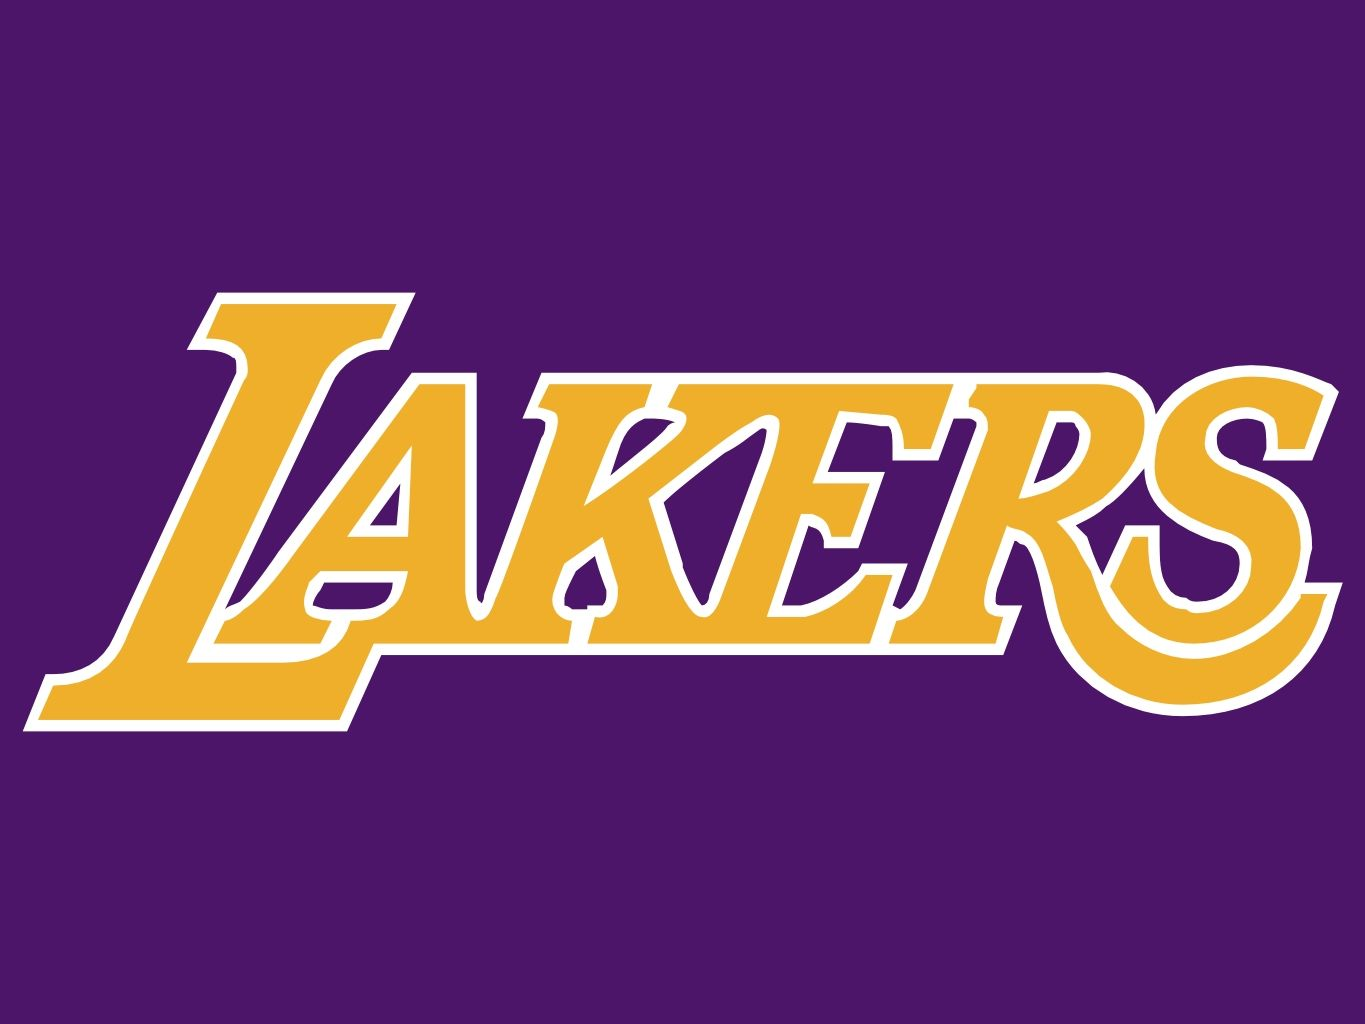 The Lakers logo is an excellent example of using purple